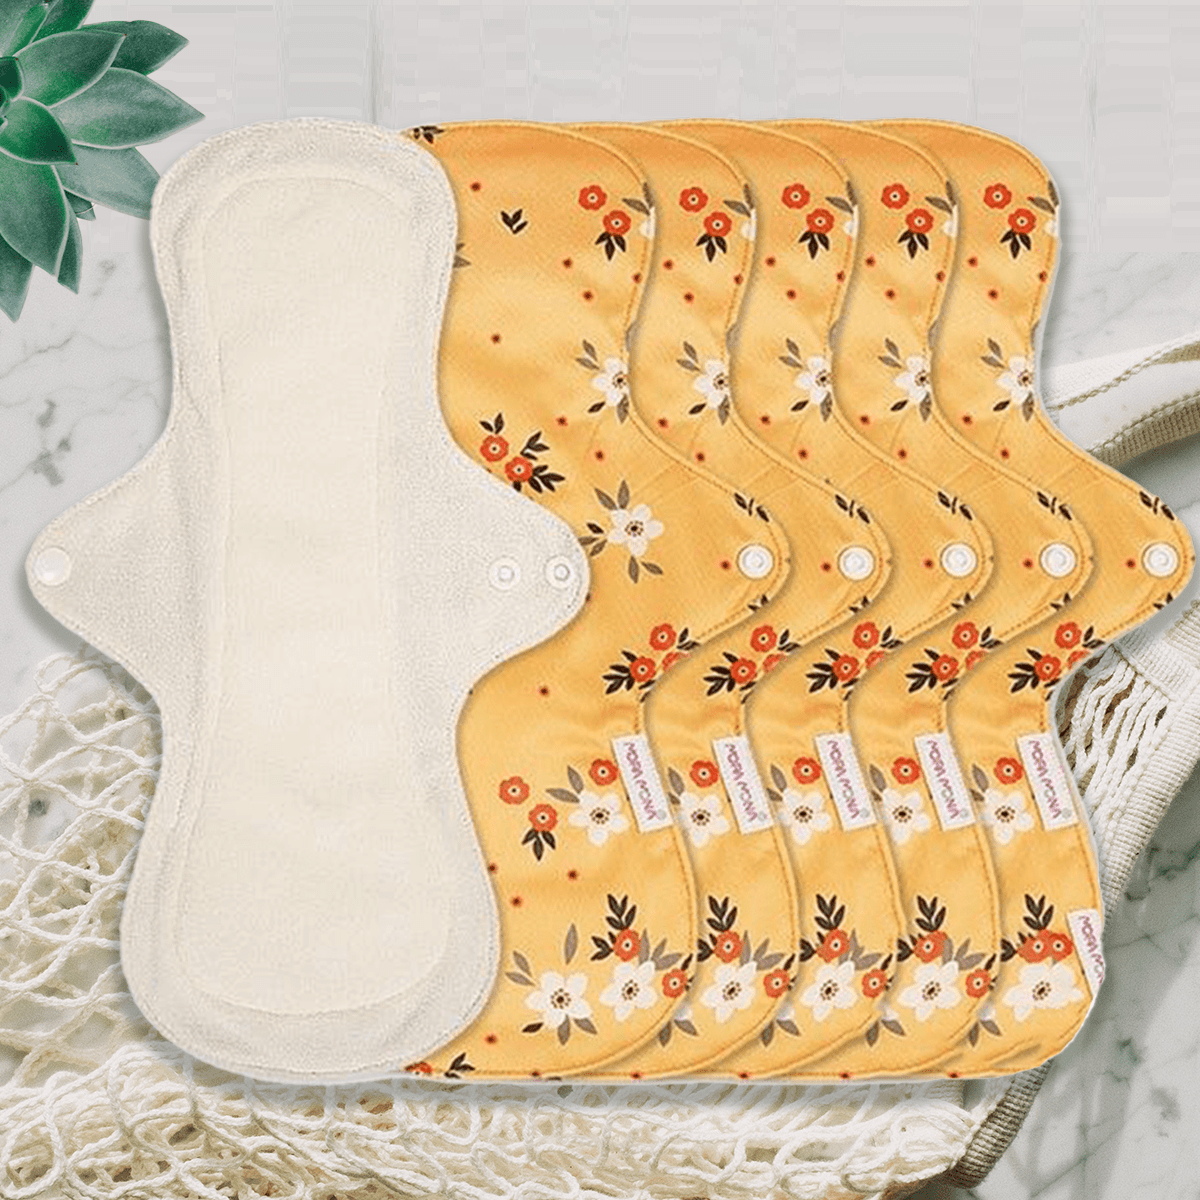 Overnight Pad - Orange Floral - Pack of 5